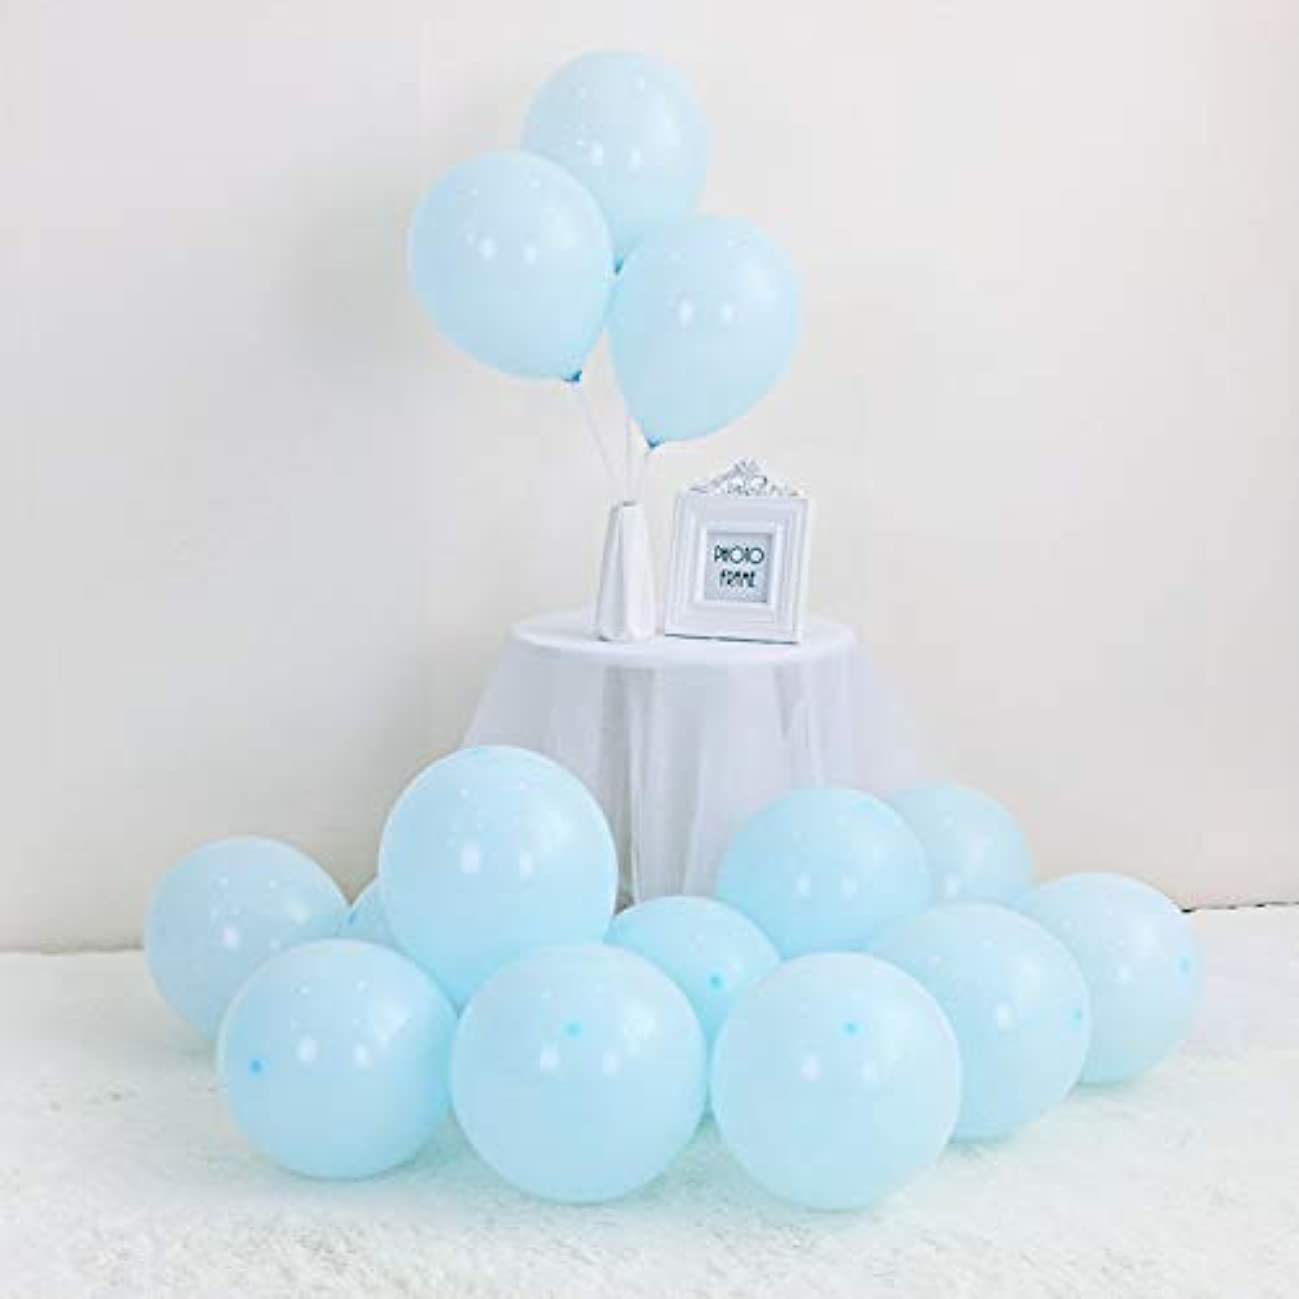 LOKMAN 100Pcs Macaron Blue Party Balloons for Wedding, Baby Shower, Girls Birthday Party Decoration. 10 Inch (Blue)